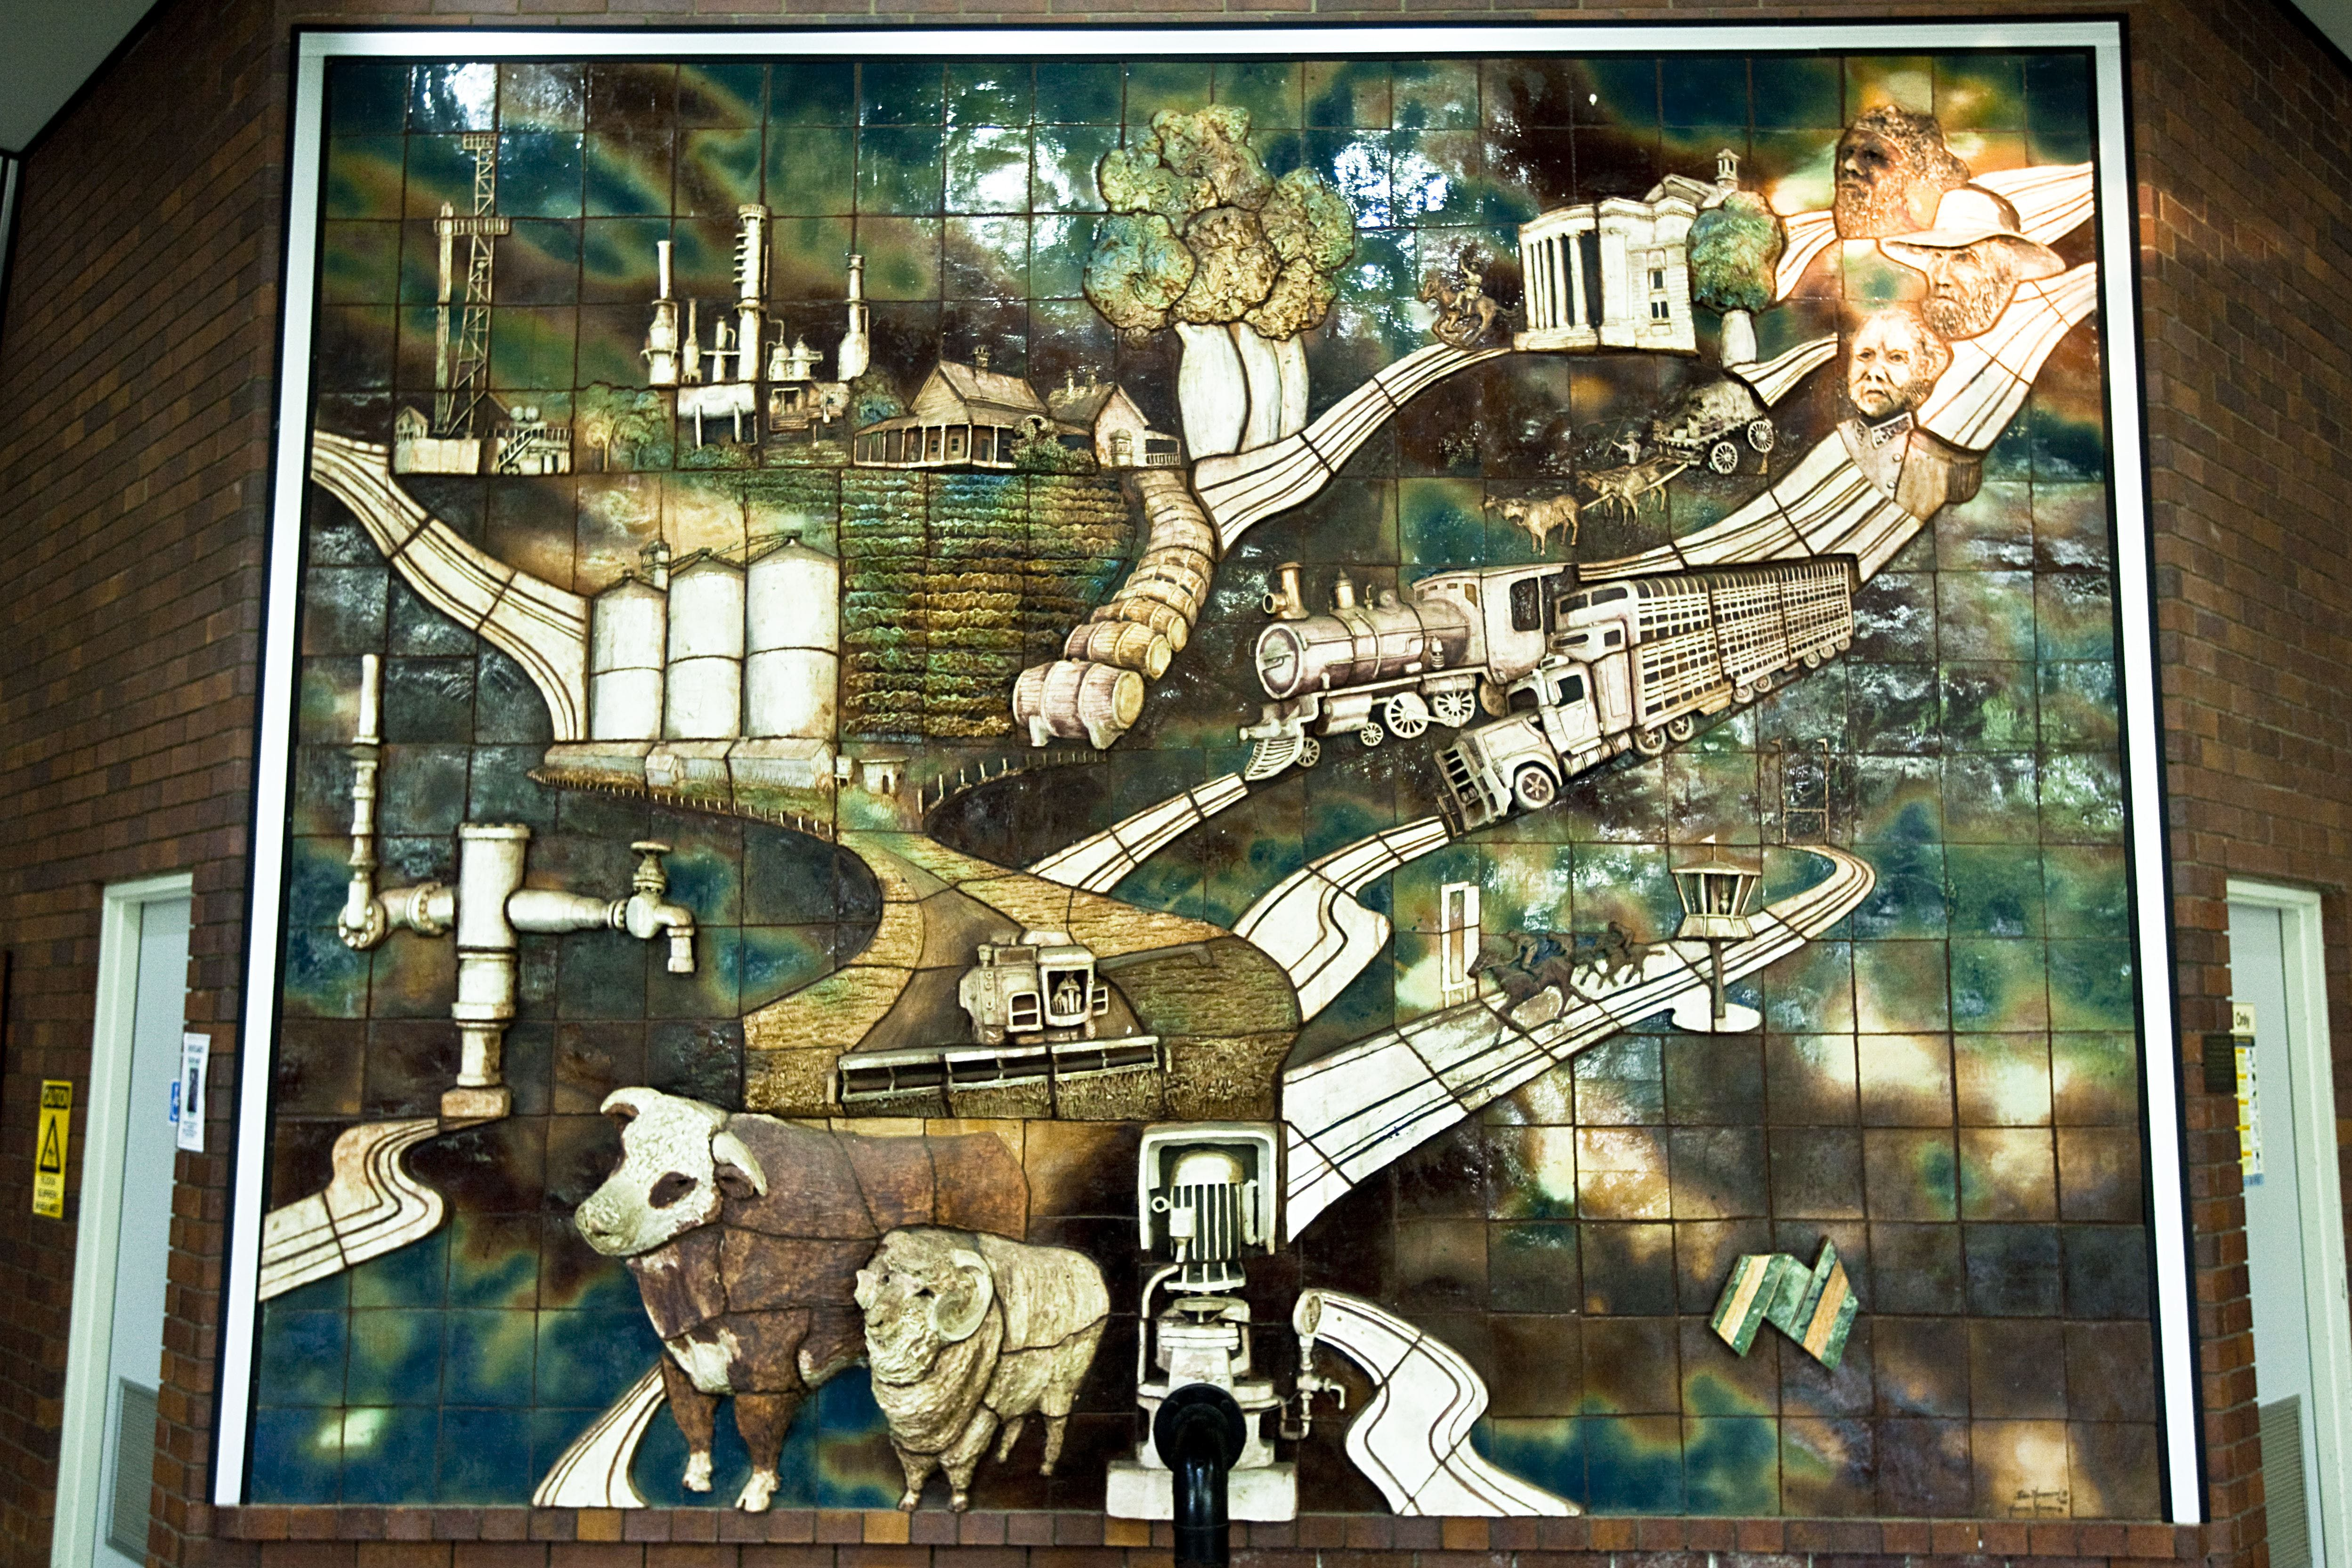 Three Dimensional Mural - Attractions Melbourne